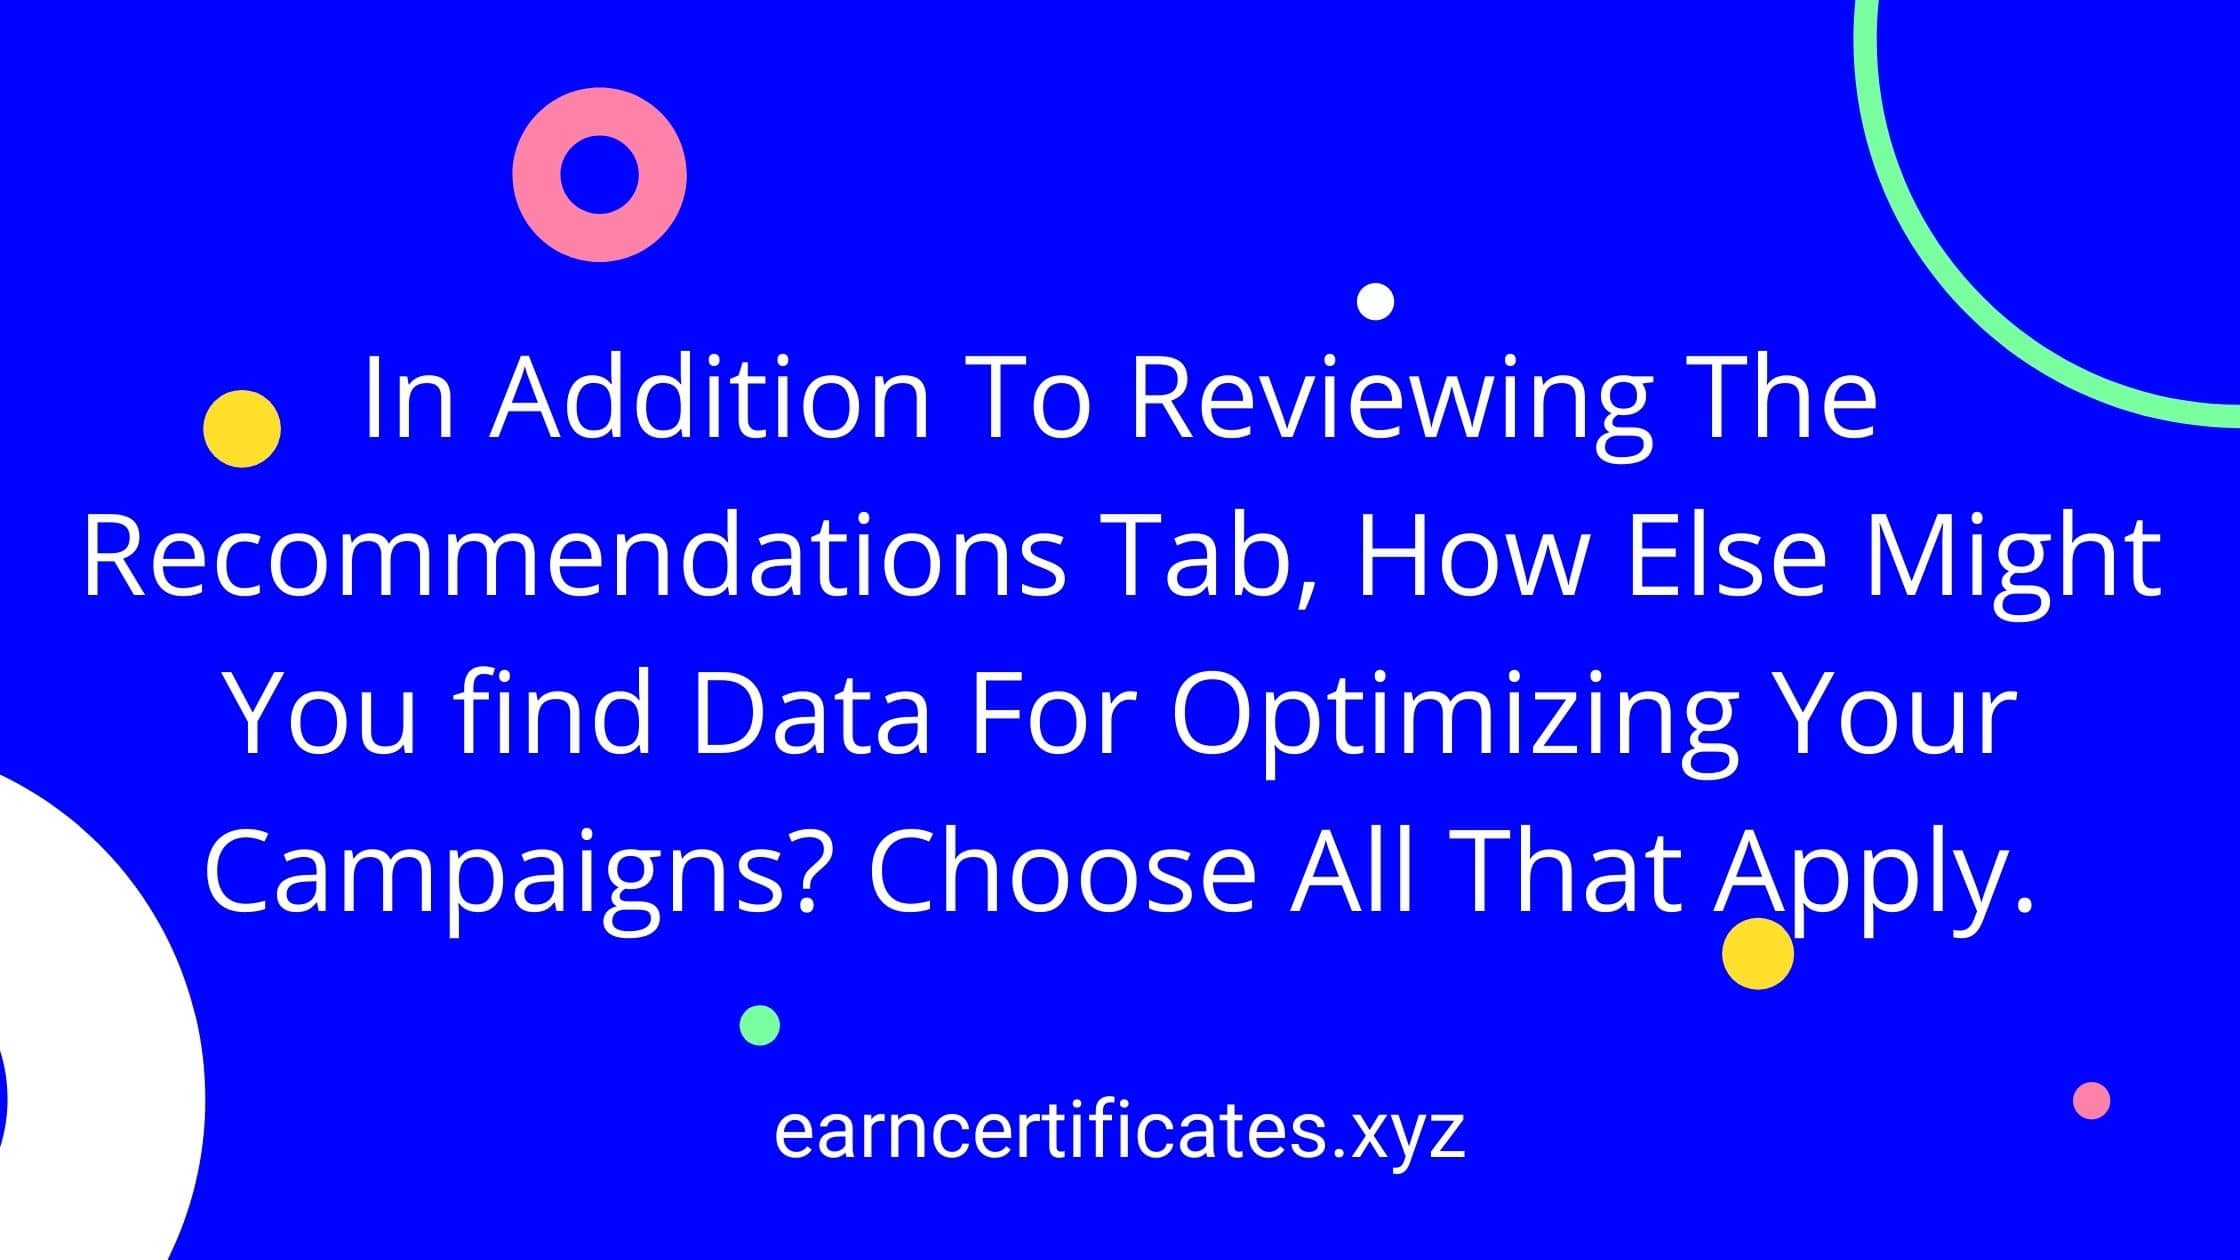 In Addition To Reviewing The Recommendations Tab, How Else Might You find Data For Optimizing Your Campaigns? Choose All That Apply.